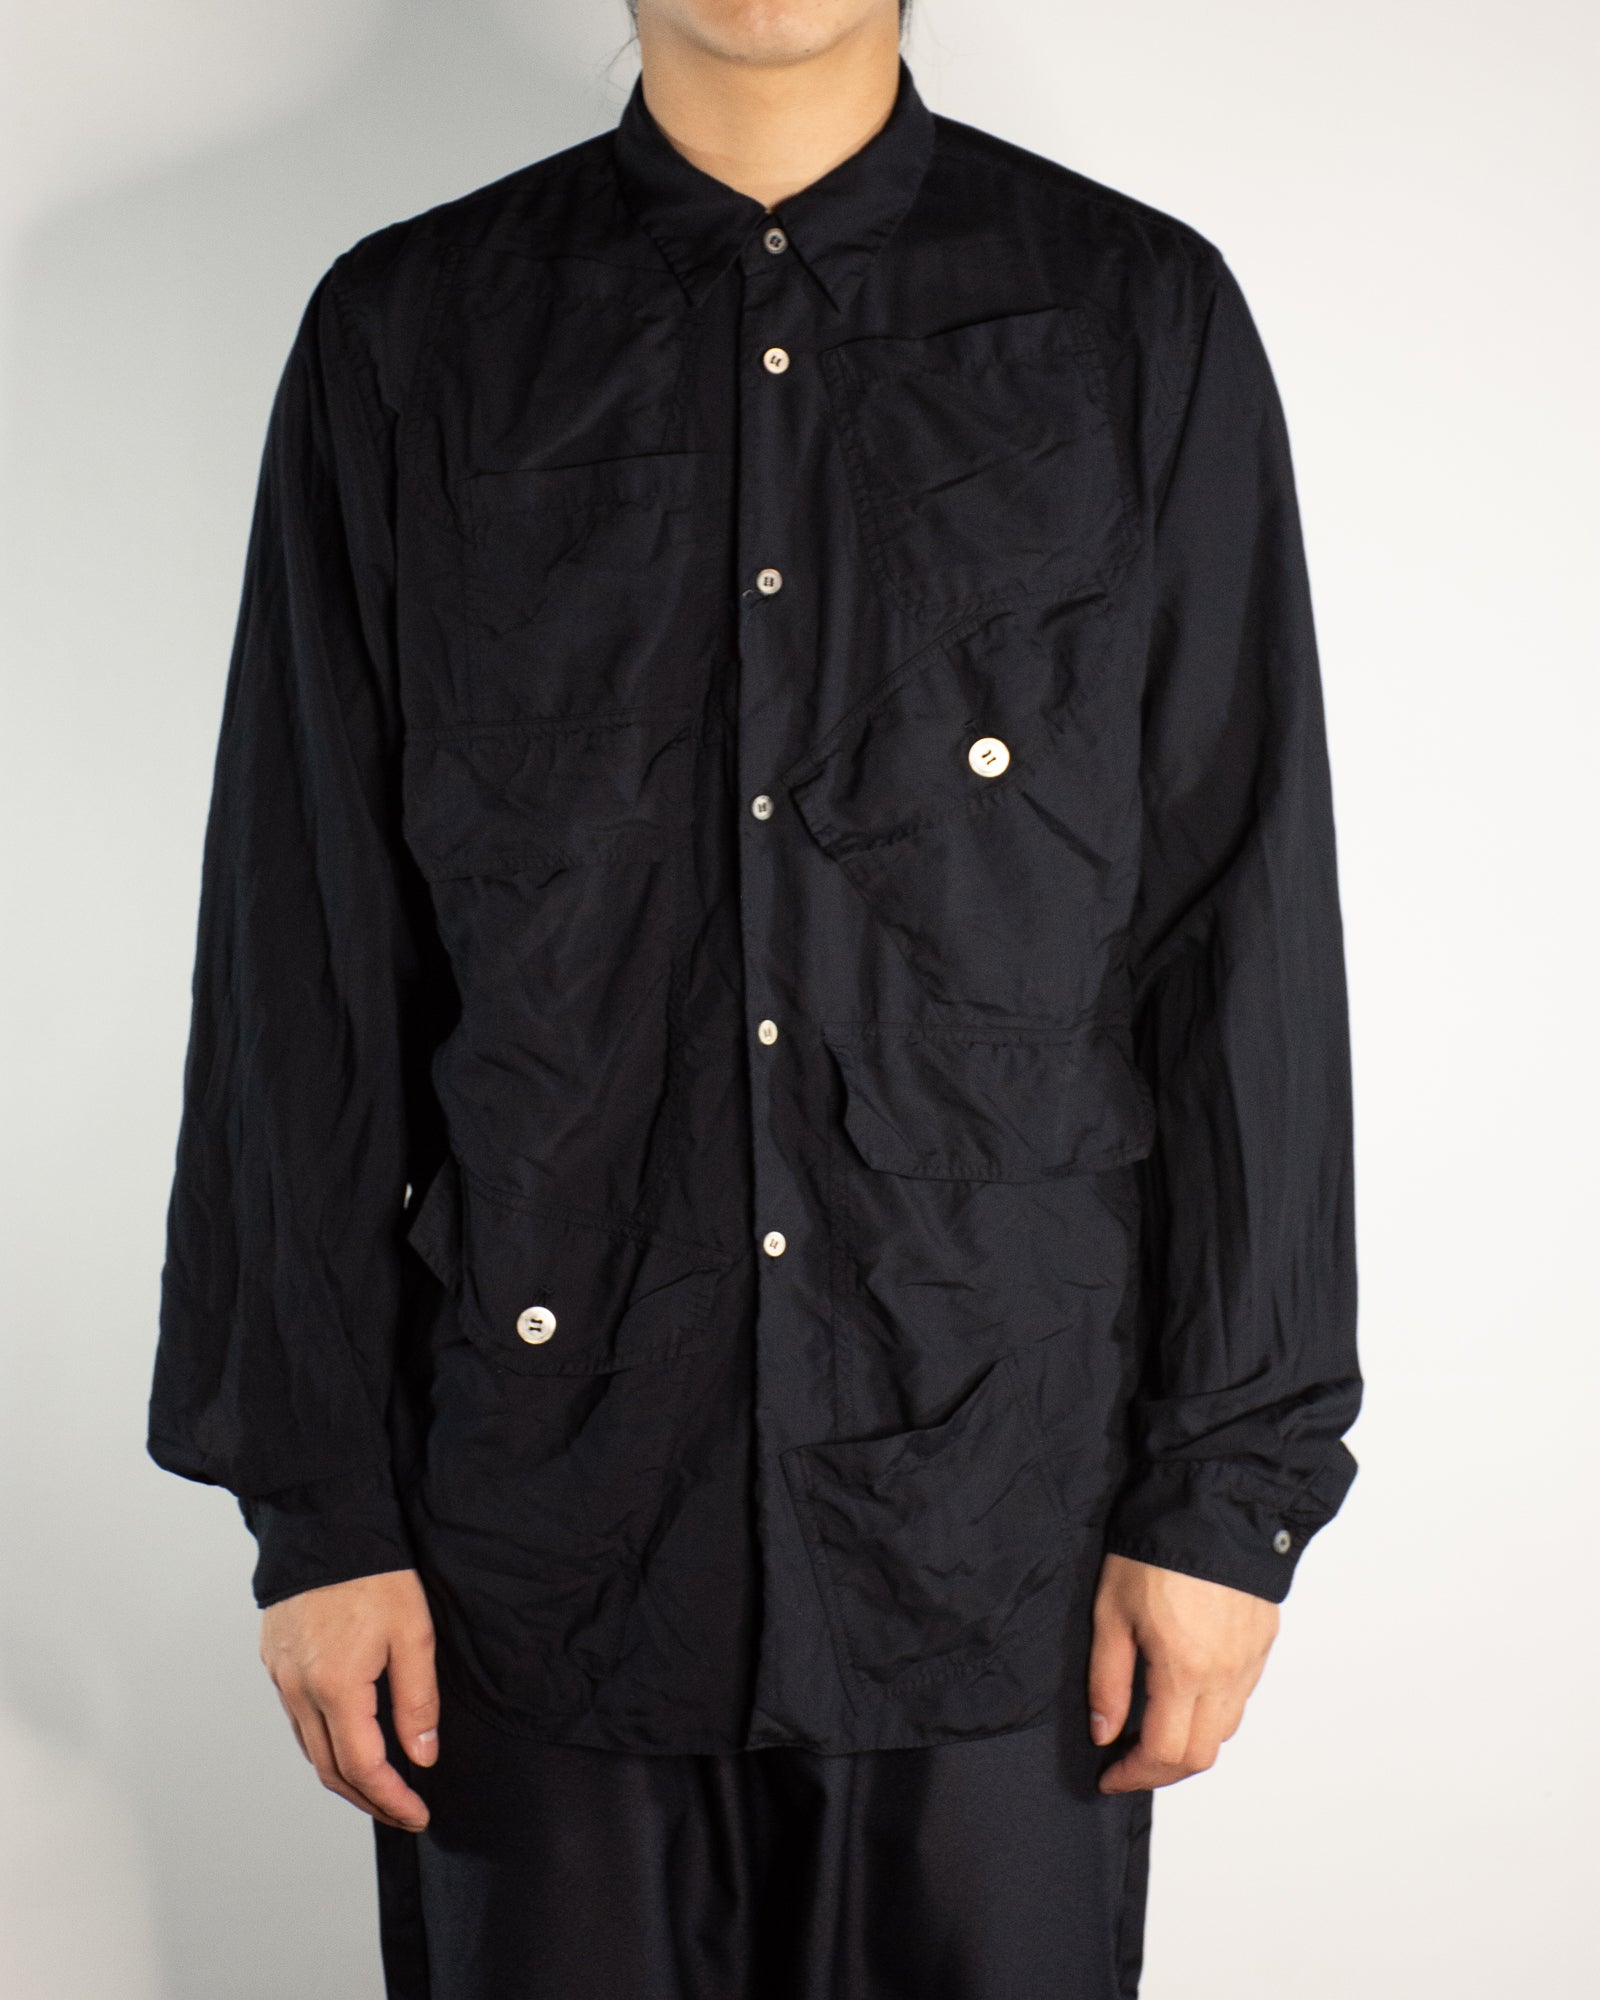 CDG BLACK Multi Pocket Shirt